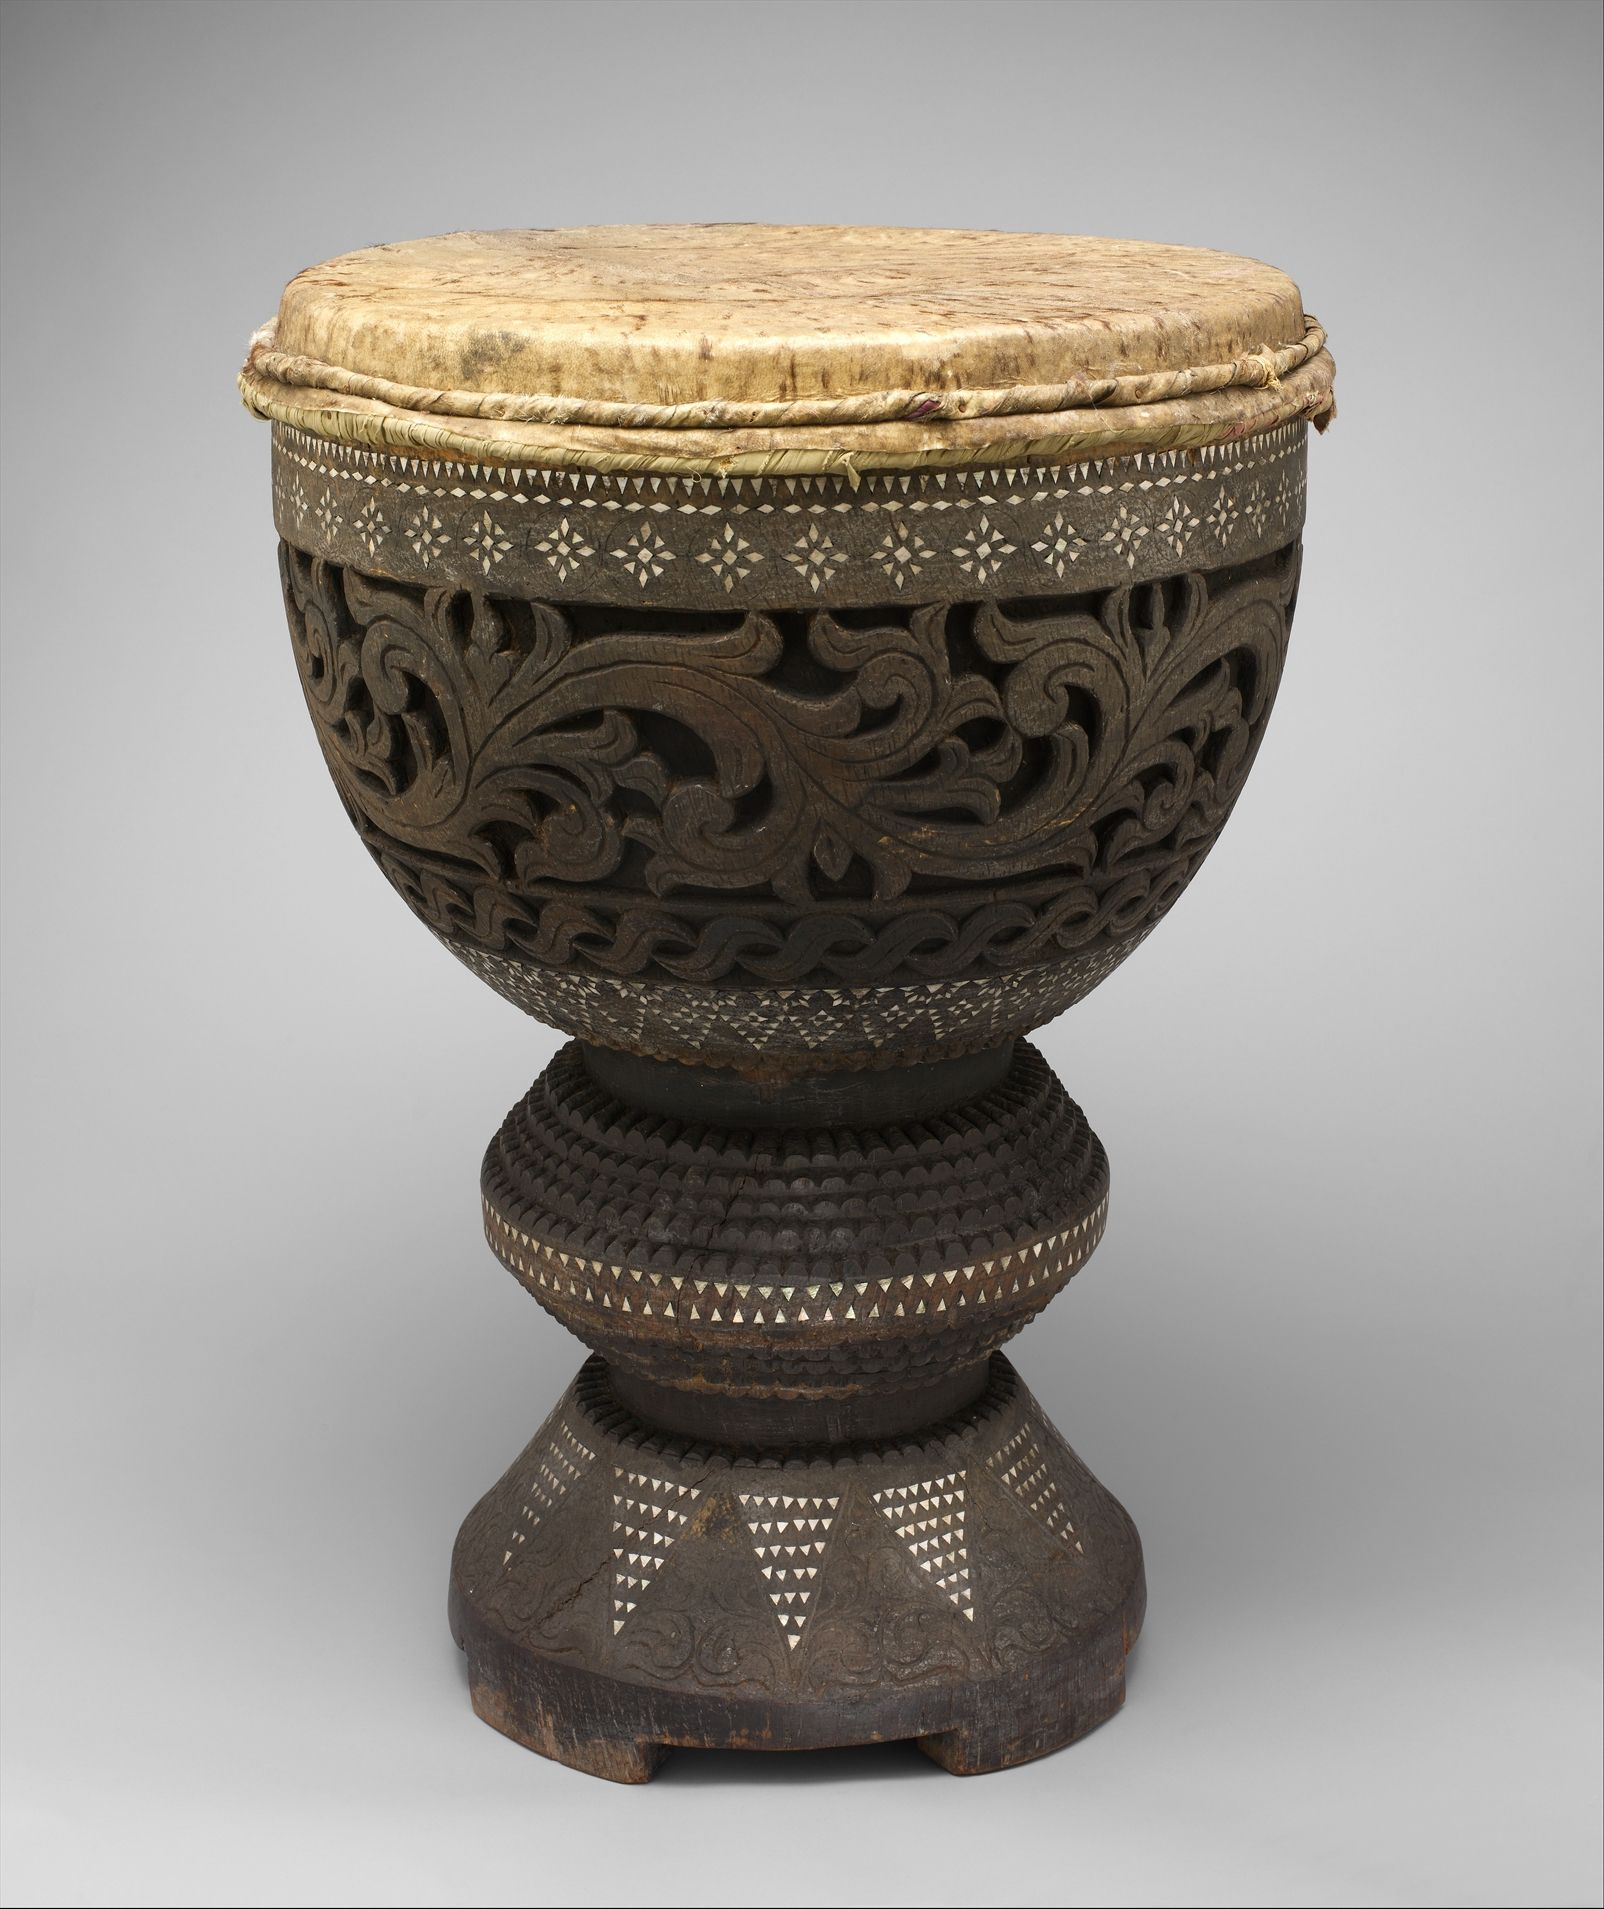 dadabwaan | date: 19th century. geography: mindanao, philippines